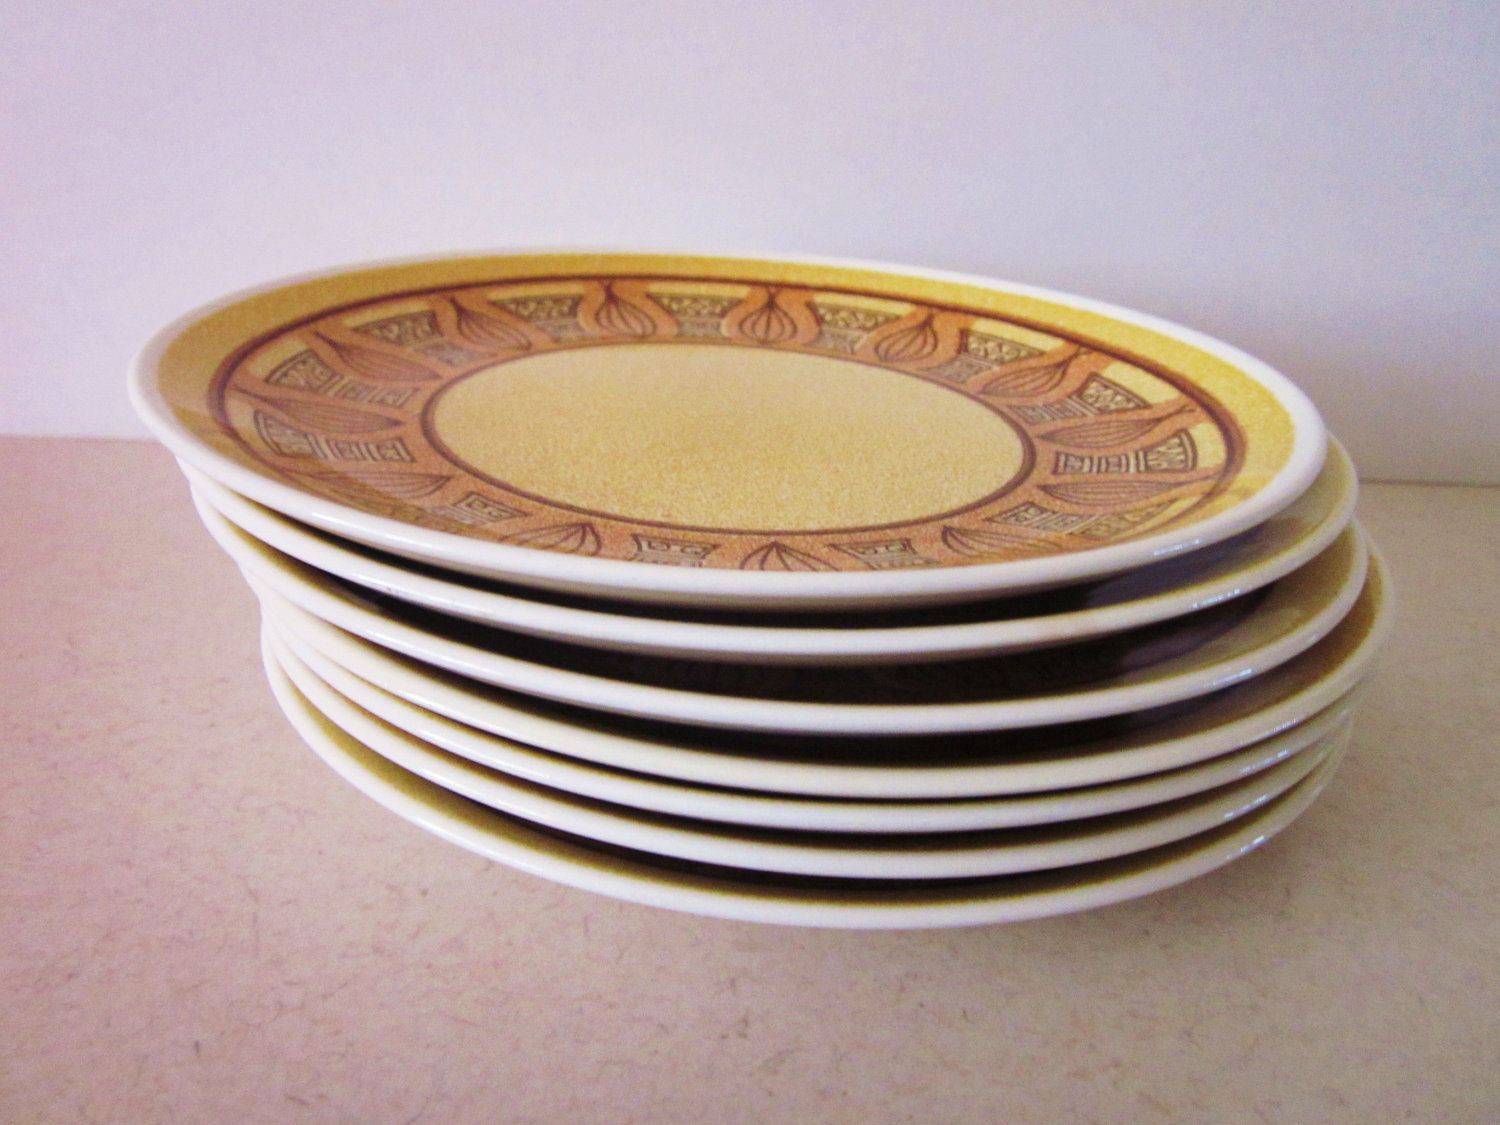 Mid Century Plates, Taylor Smith and Taylor Honey Gold Ironstone Dinner Plates, Modern Vintage, Set of 7.